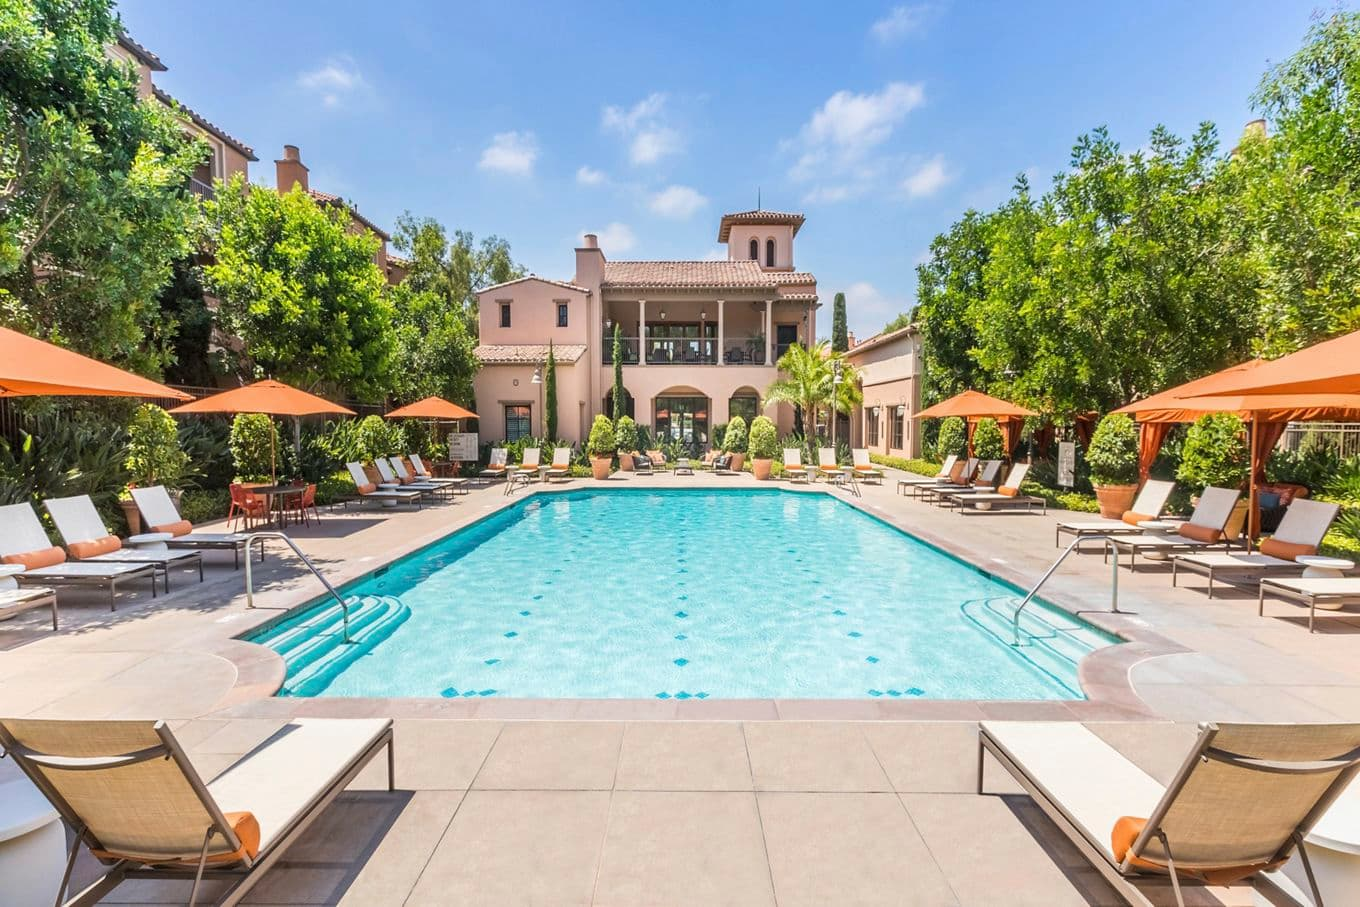 Exterior view of pool at Portola Place Apartment Homes in Irvine, CA.